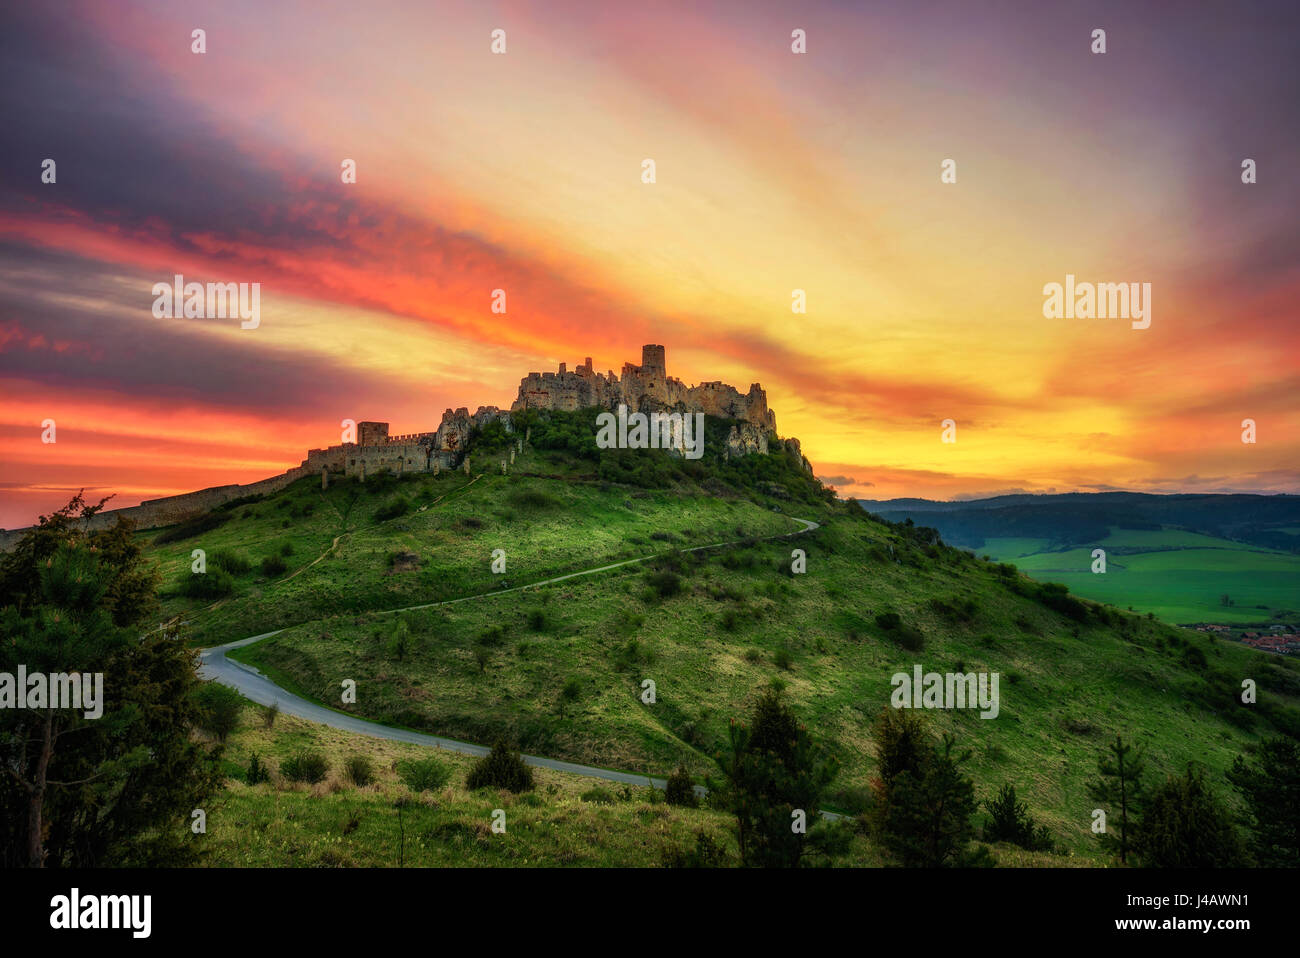 Dramatic sunset over the ruins of Spis Castle in Slovakia.  Spis Castle is a national monument and one of the biggest - Stock Image